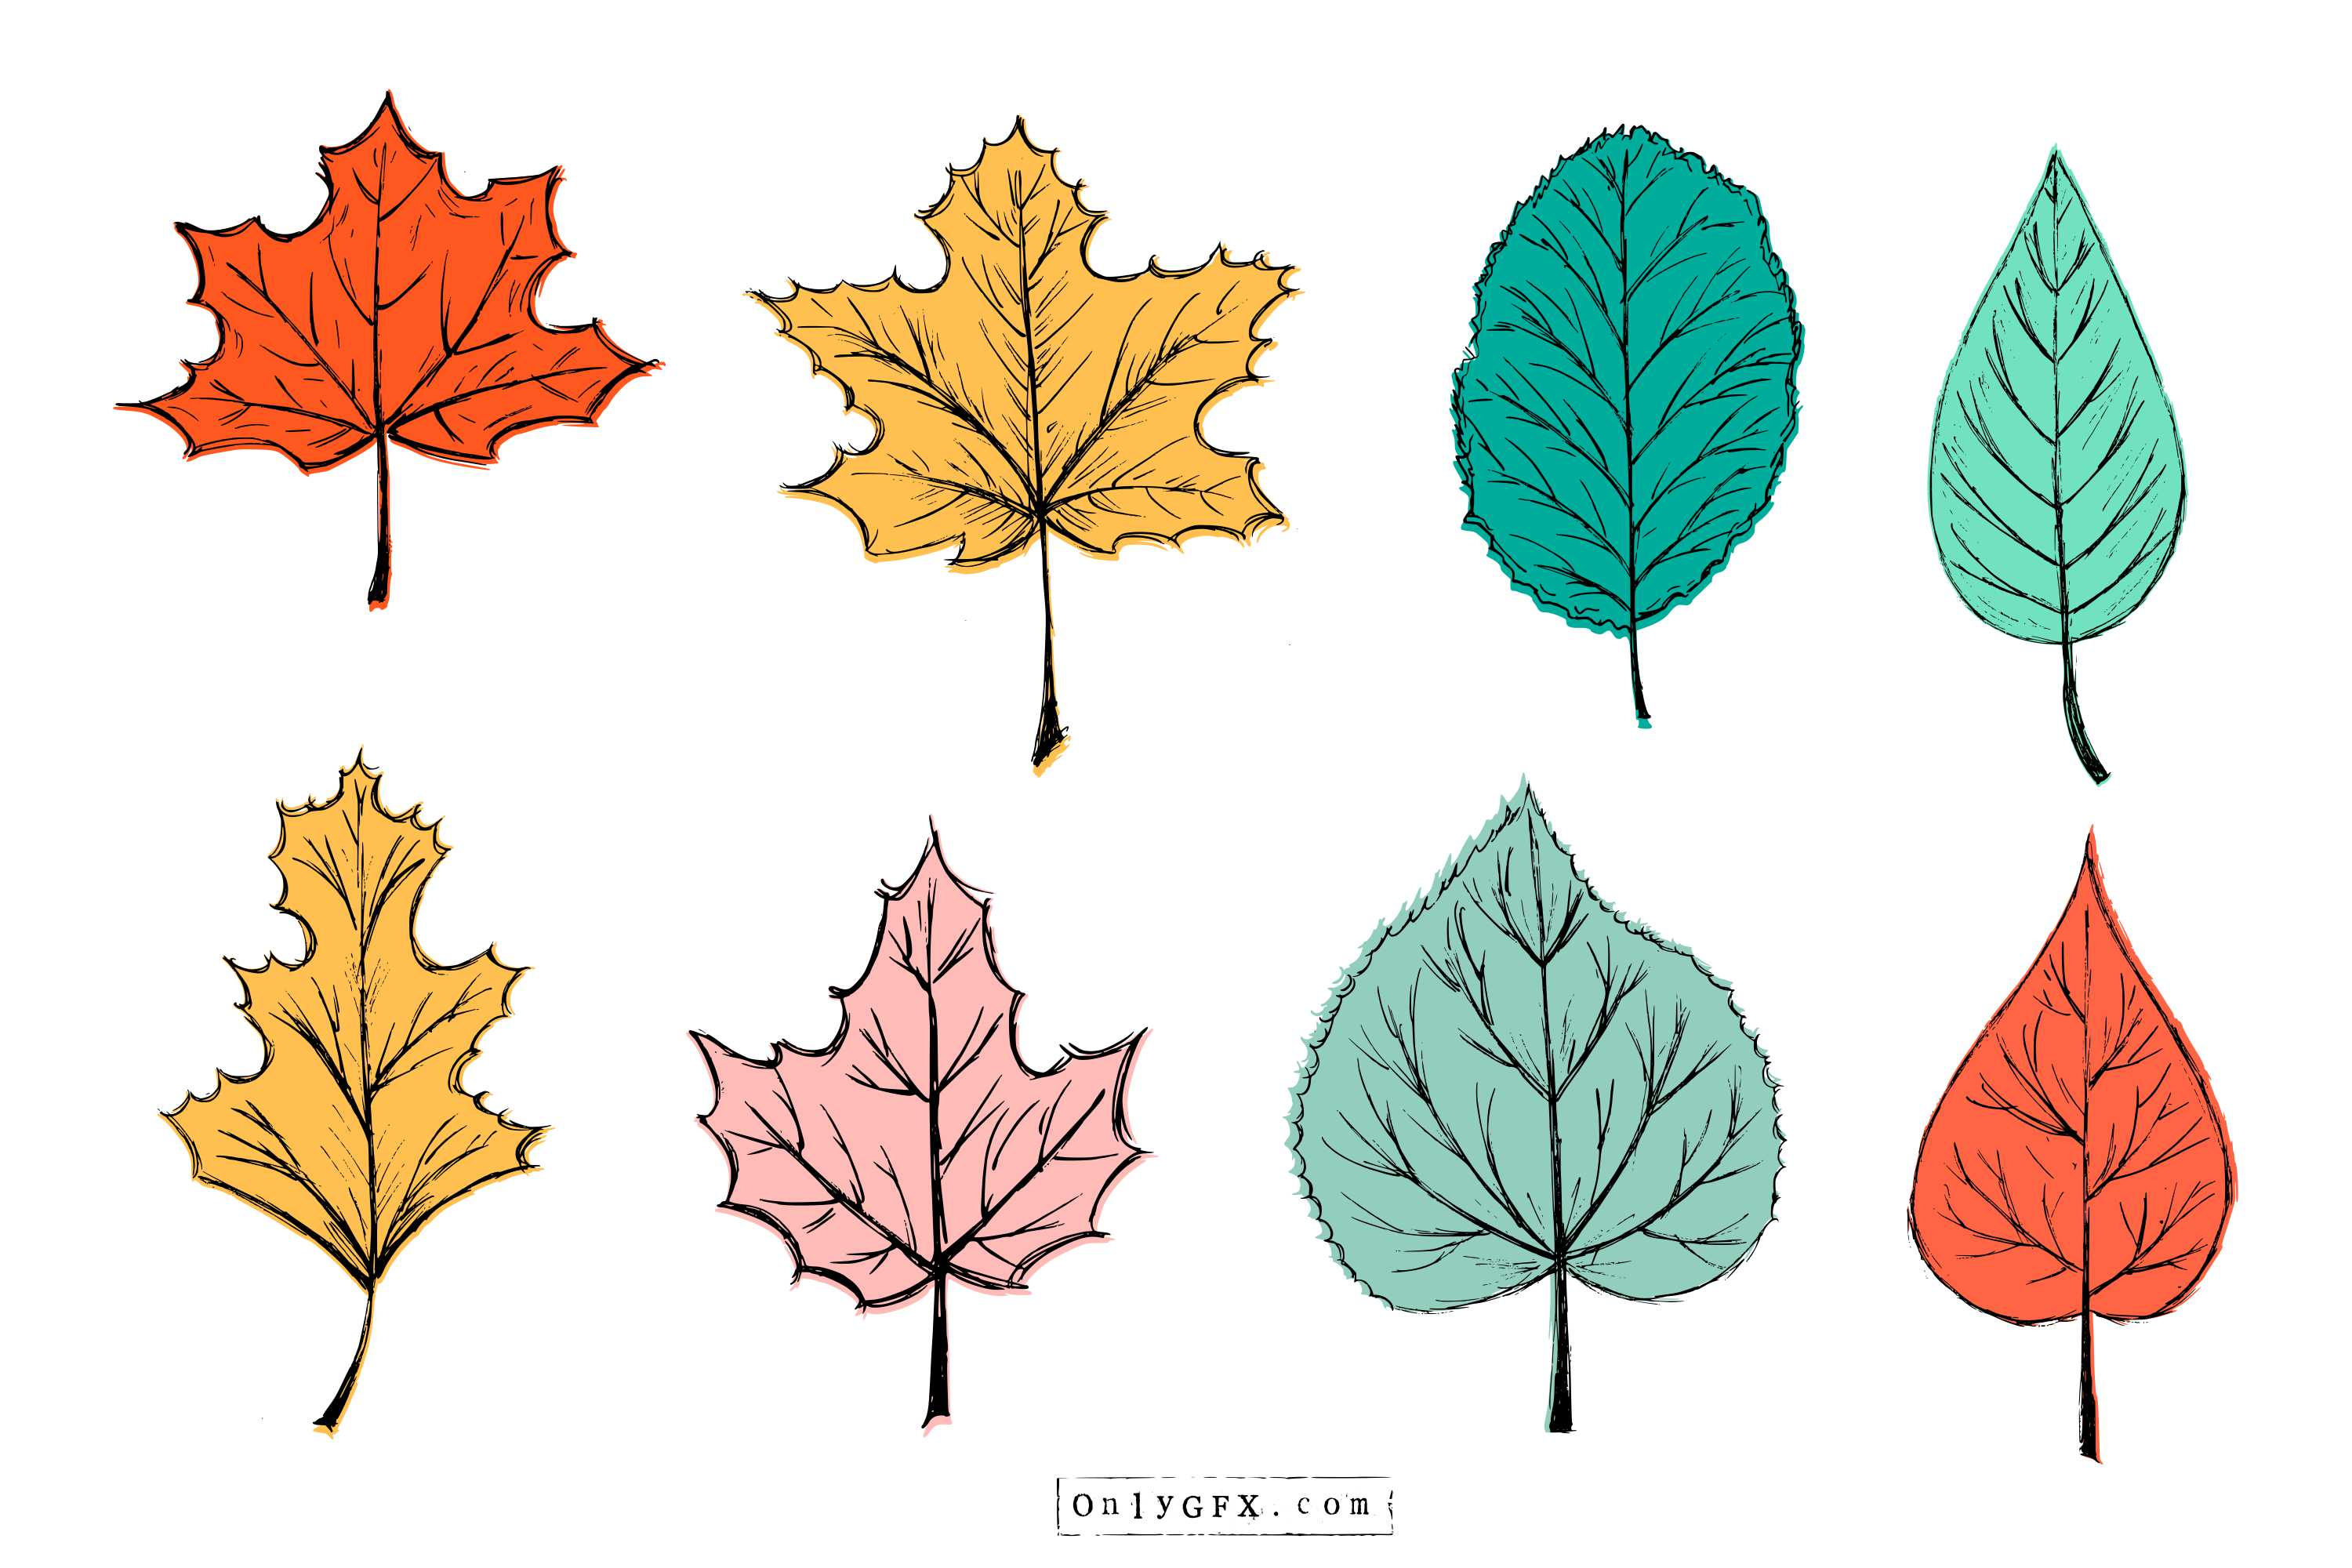 leaf-drawing-vector-cover.jpg